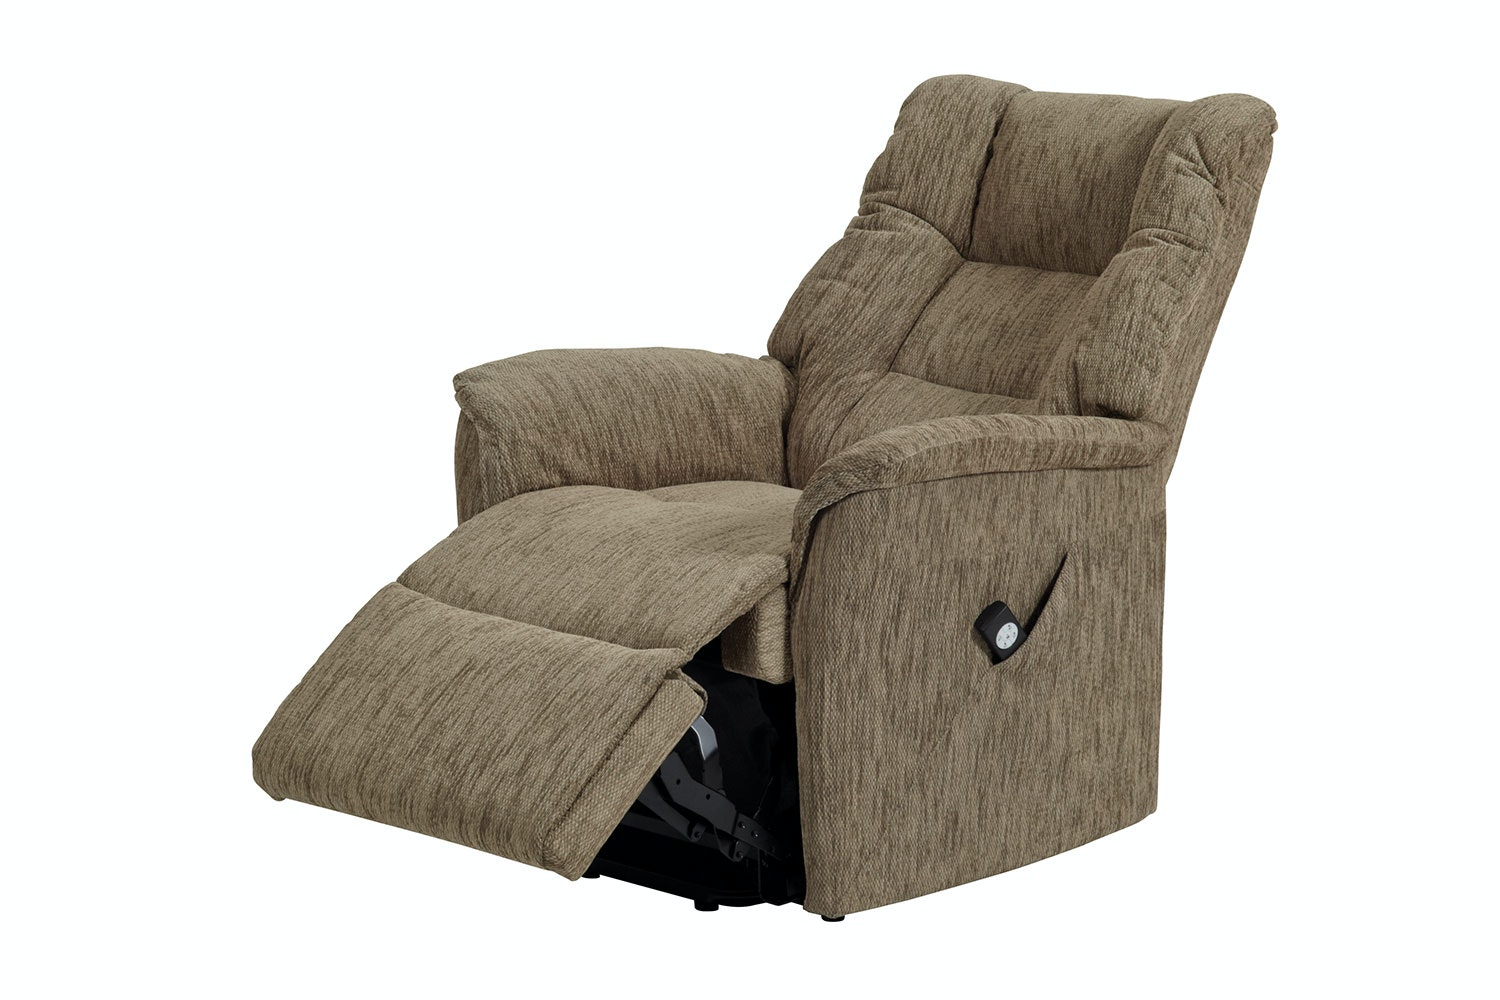 Picture of: Victor Large Multi Function Fabric Recliner Chair By Img Harvey Norman New Zealand